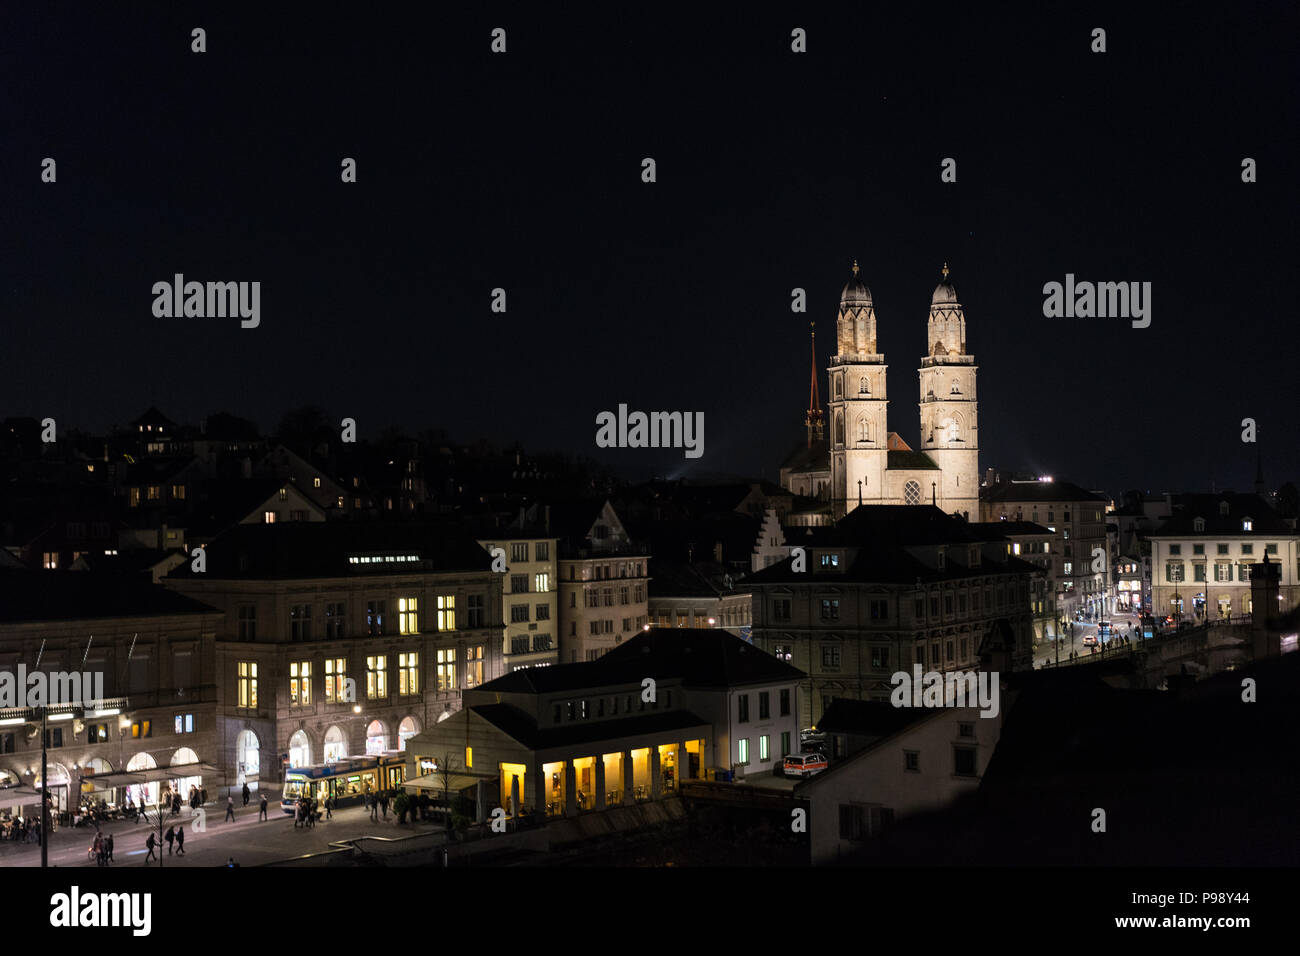 Zurich city by night with famous Grossmuenster building, Switzerland - Stock Image